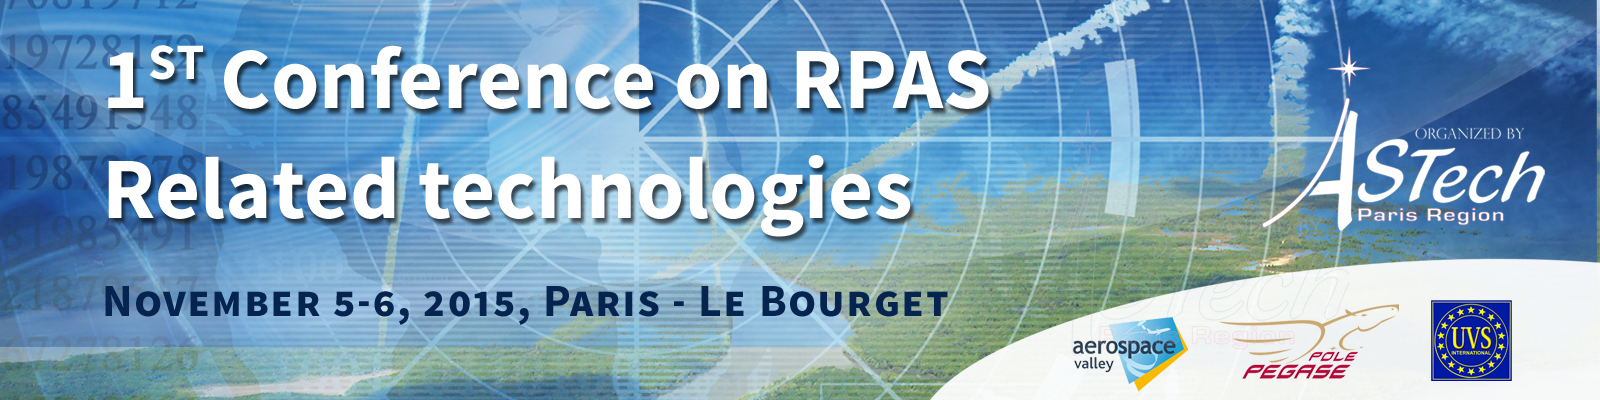 1st International Conference on RPAS related Technologies – 5-6 Nov 2015 – Paris Le Bourget